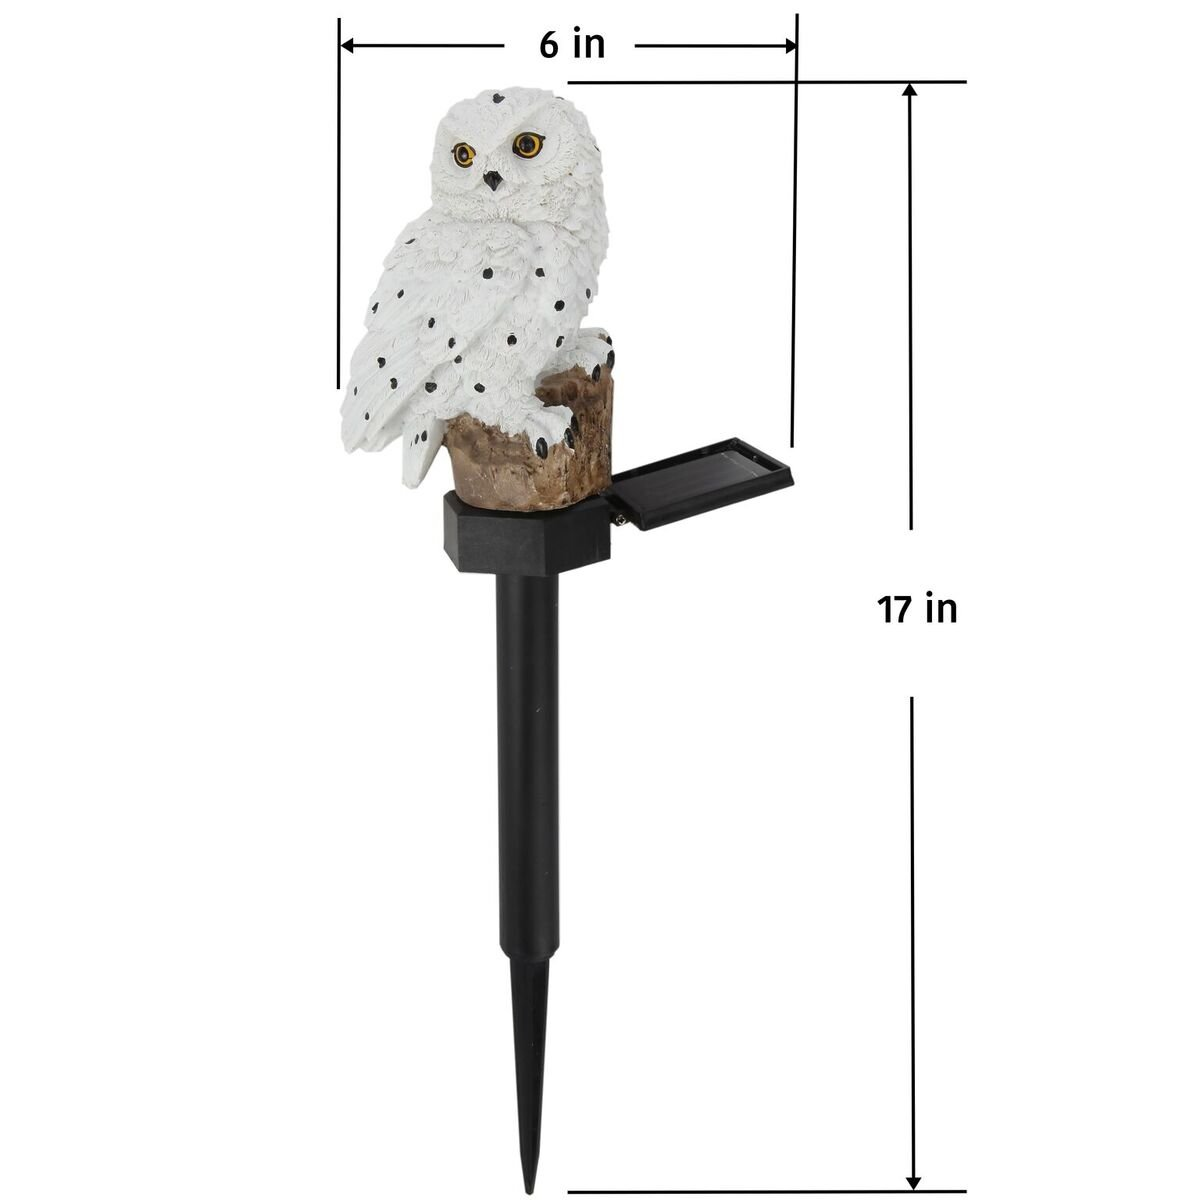 Trenton Gifts Weather Resistant Outdoor LED Solar Owl Light, Garden Stake | White by Trenton Gifts (Image #5)